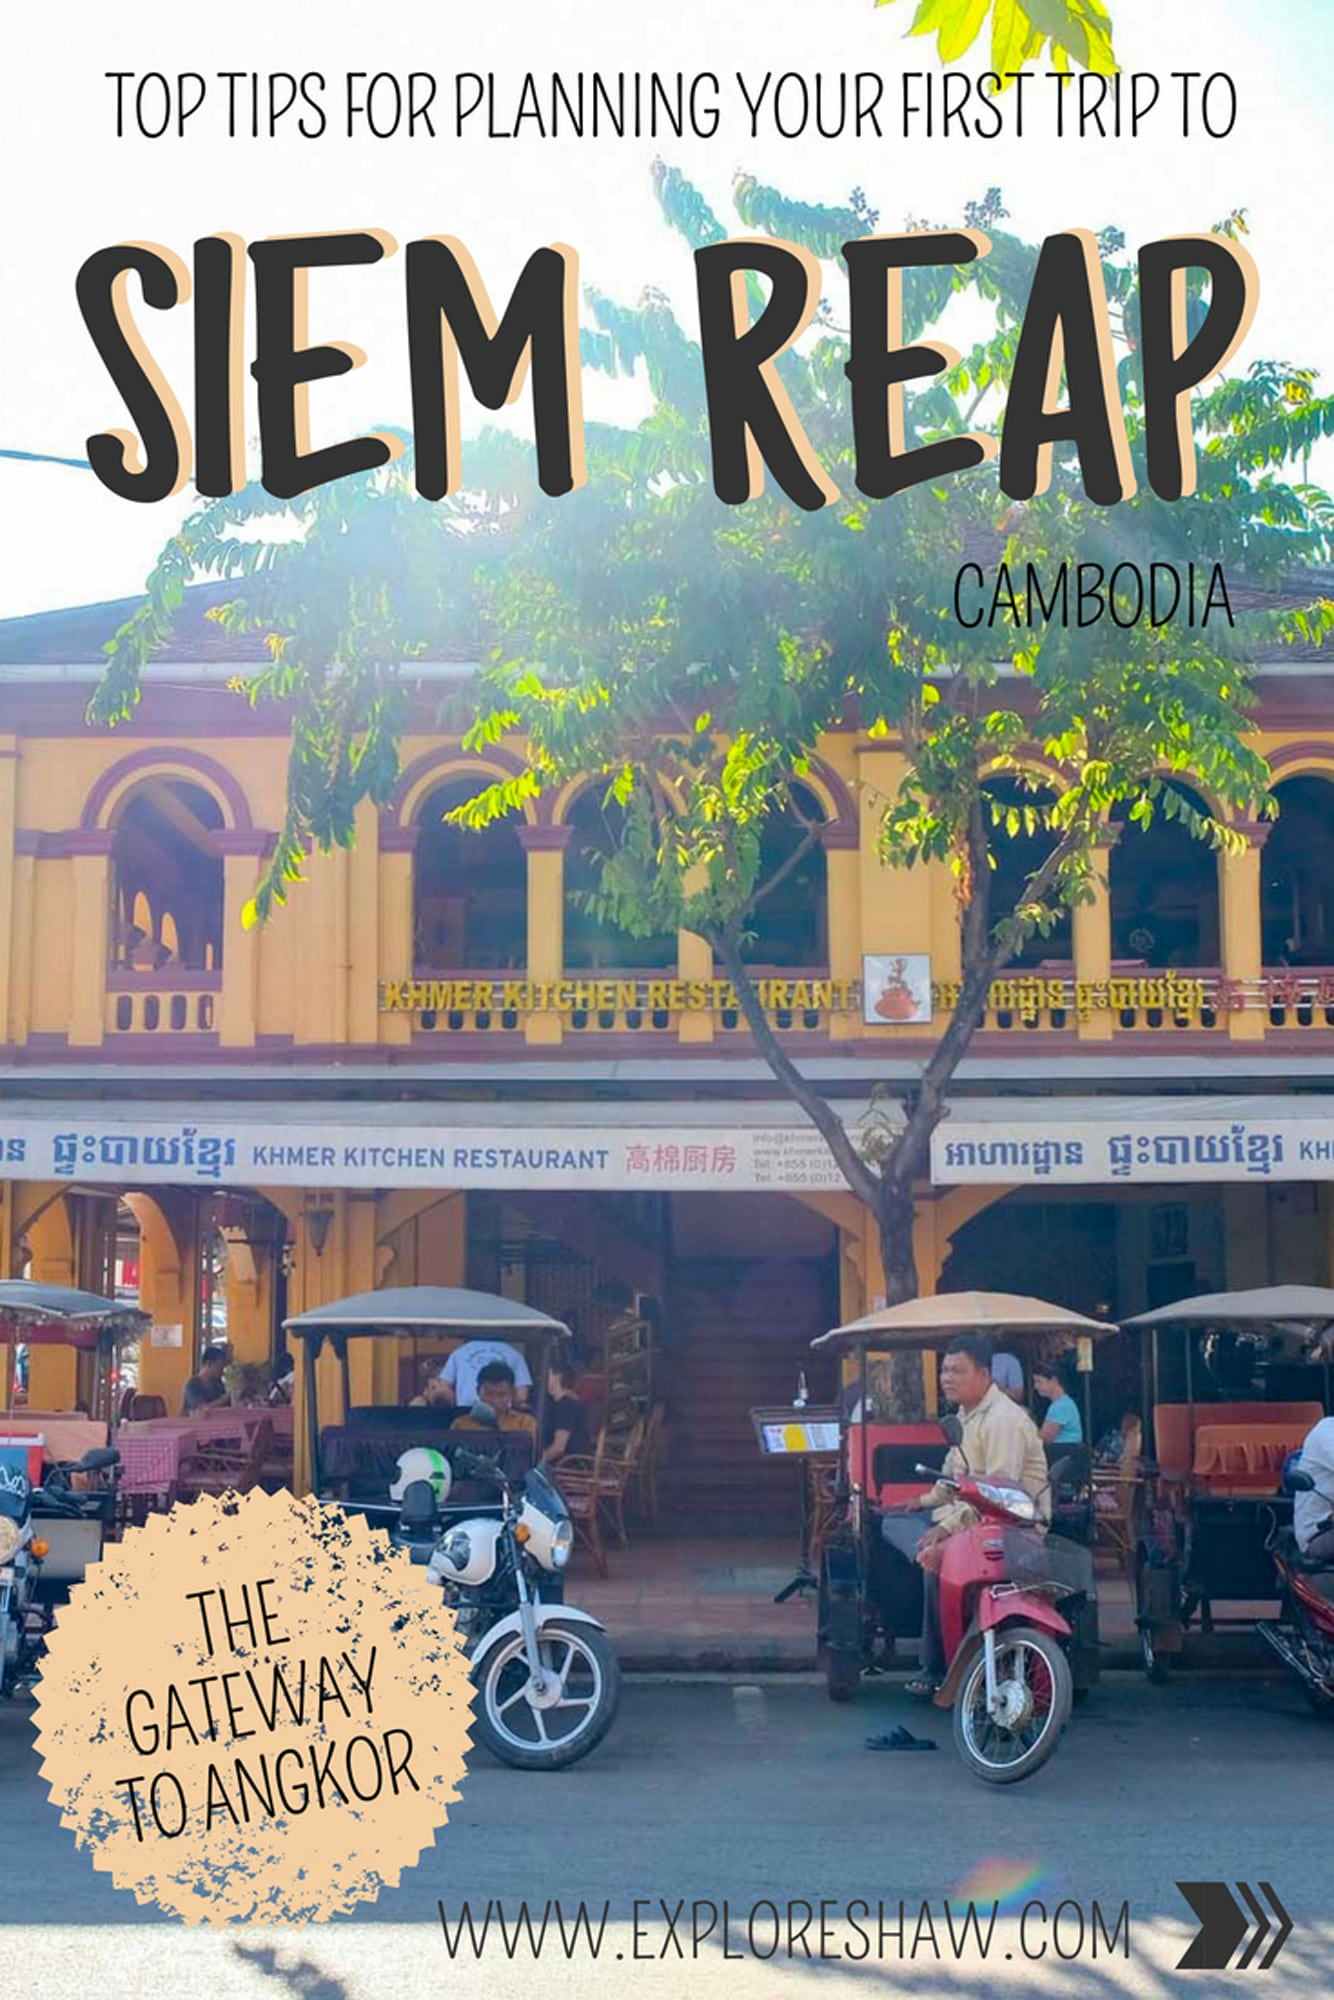 TOP TIPS FOR PLANNING YOUR FIRST TRIP TO SIEM REAP